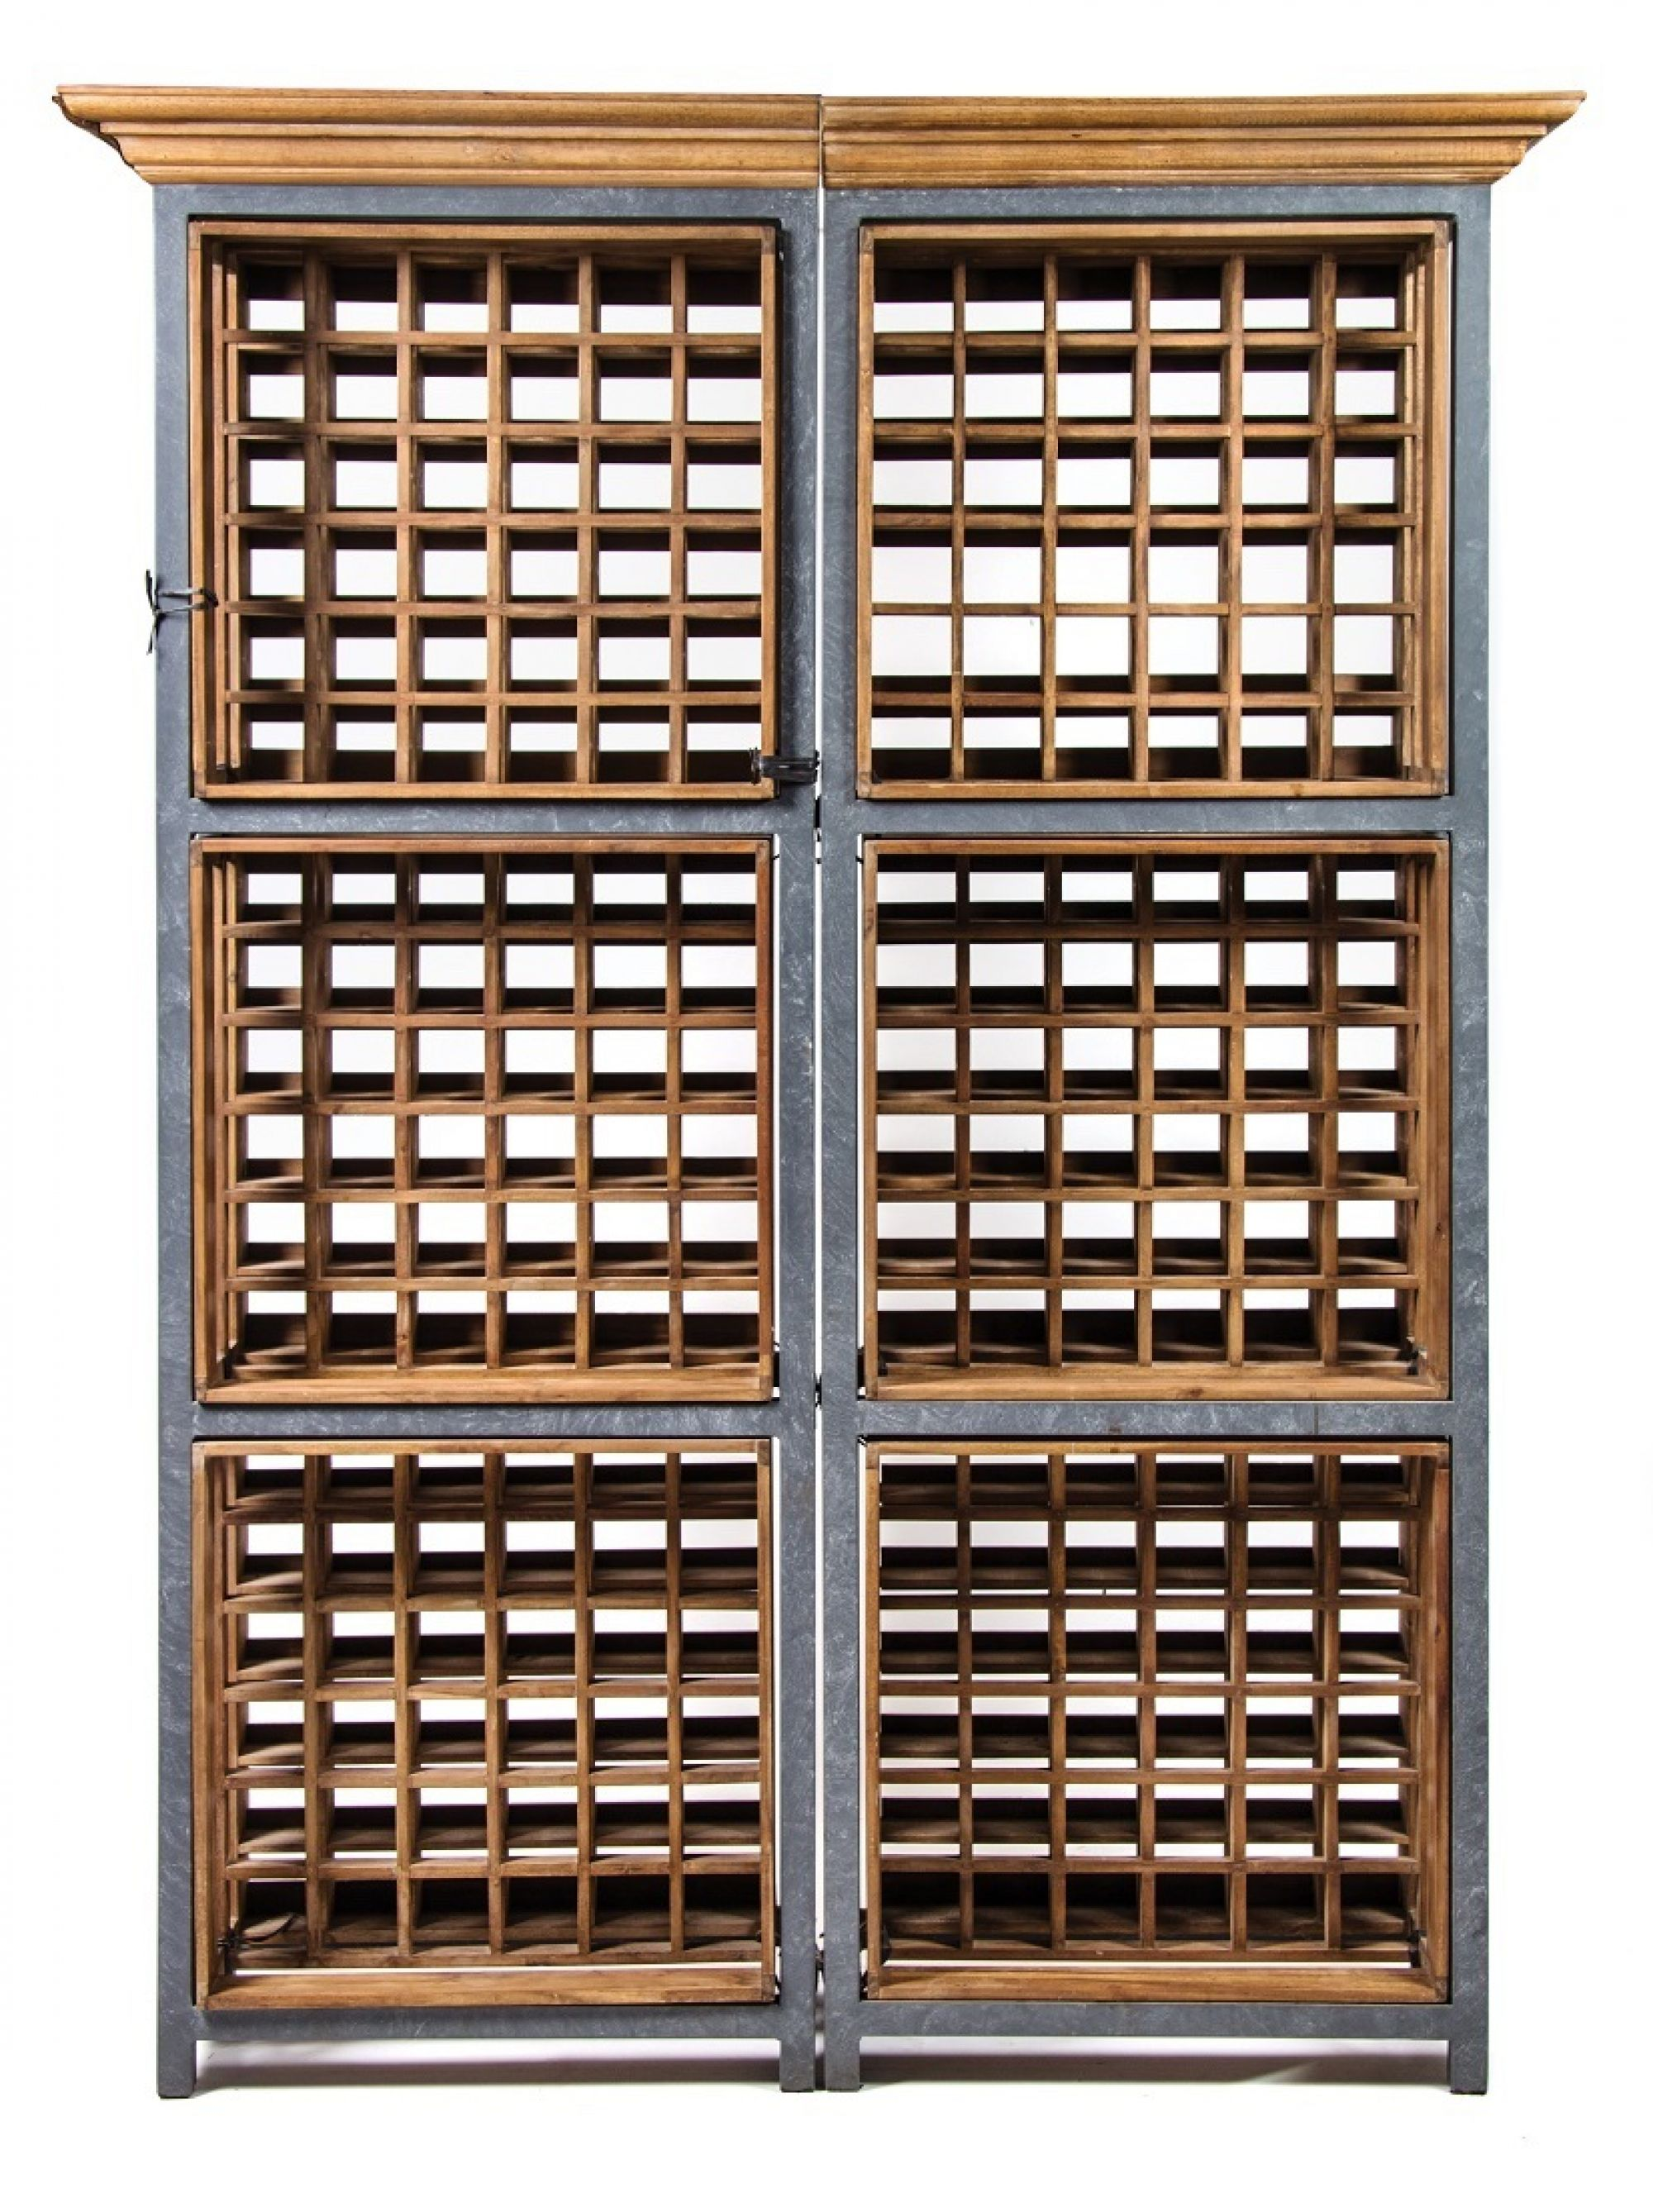 384 146 Zinc and Mahogany Wine Storage Racks RGB sm